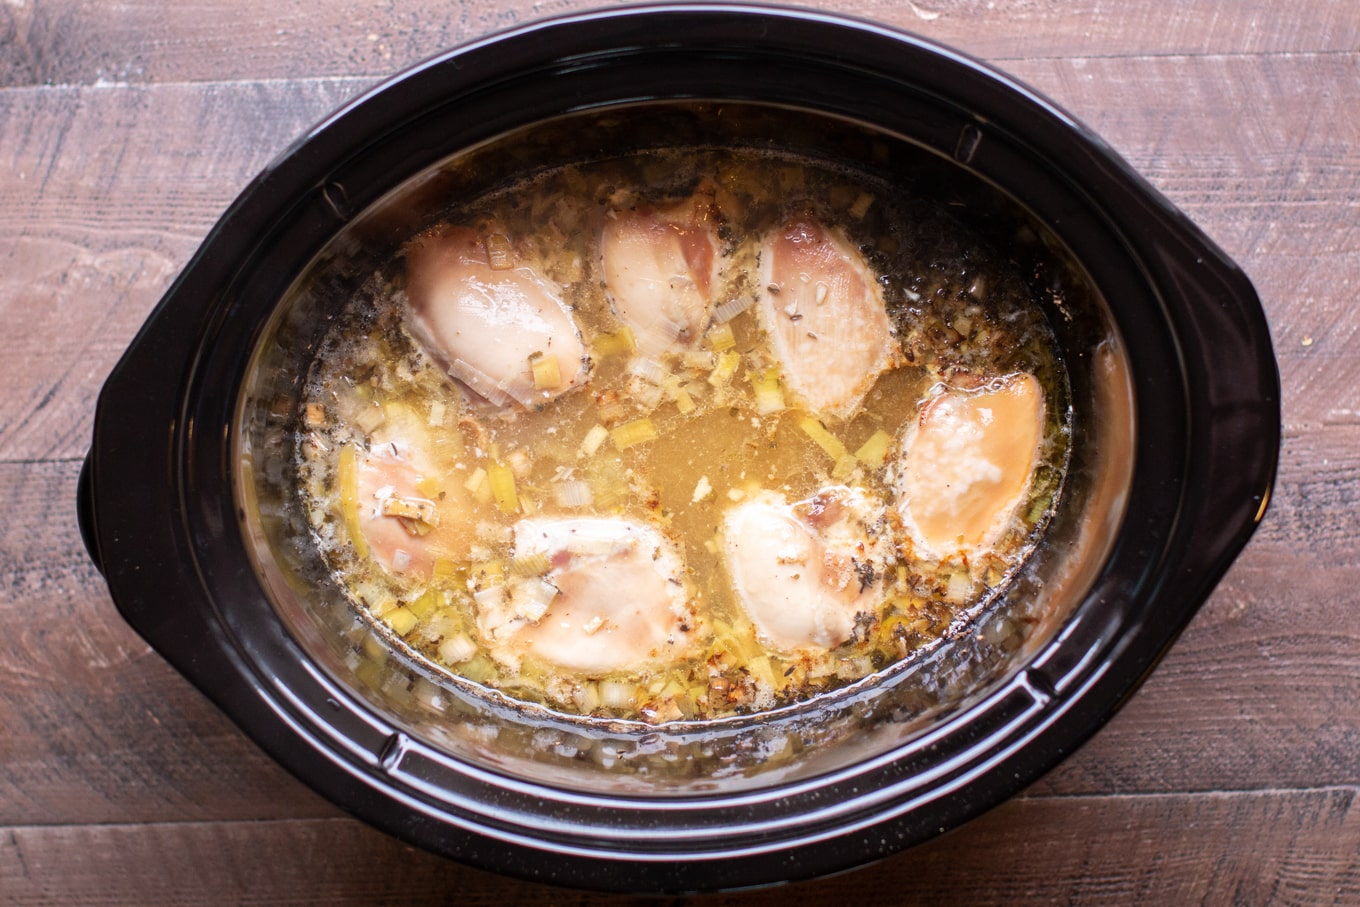 cooked chicken thighs in broth in a slow cooker.